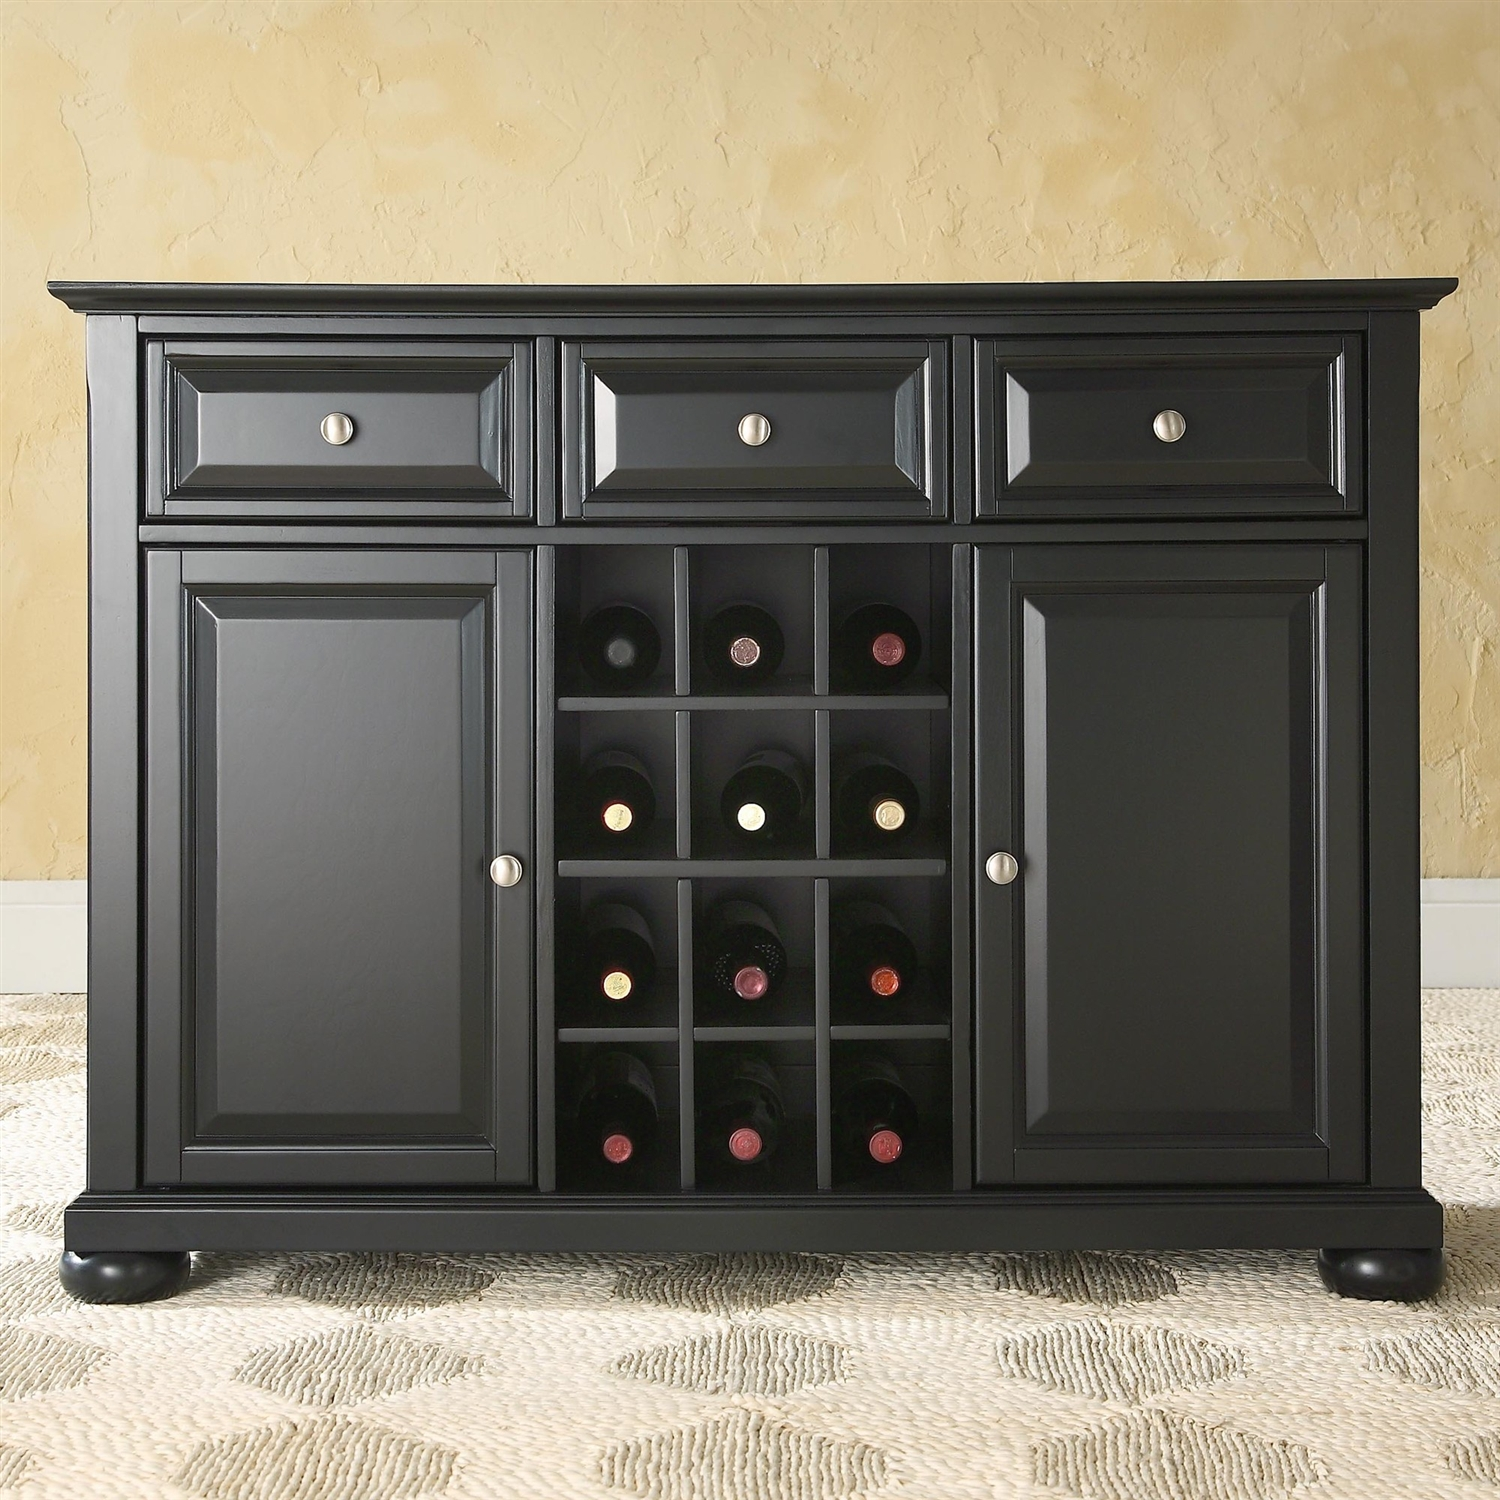 Black Dining Room Buffet Sideboard & Wine Storage Cabinet